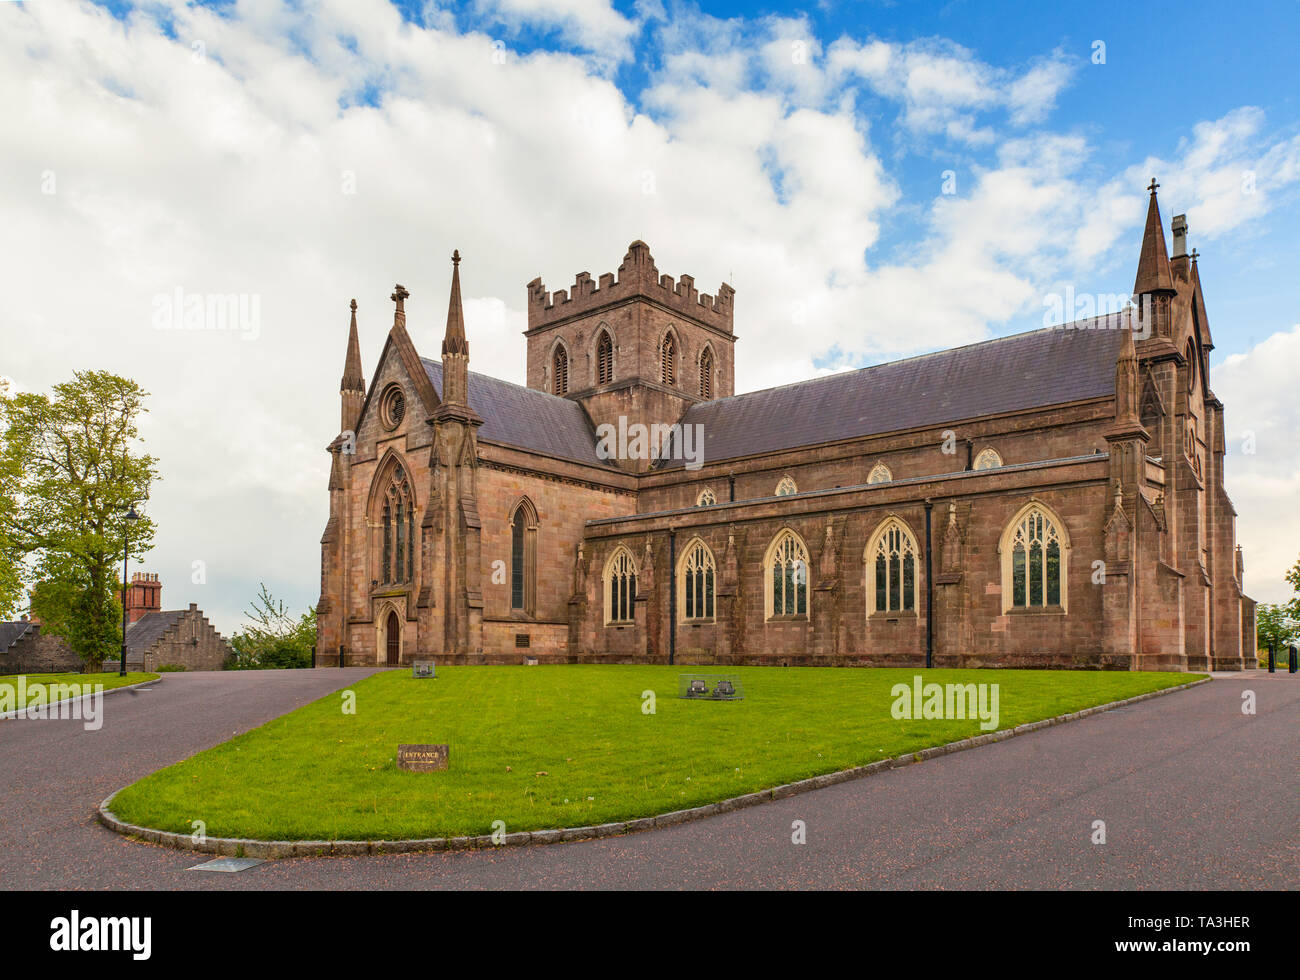 The north side of St Patrick's Cathedral in the city of Armagh, County Armagh, Ulster, Northern Ireland is the seat of the Archbishop of Armagh in the Stock Photo